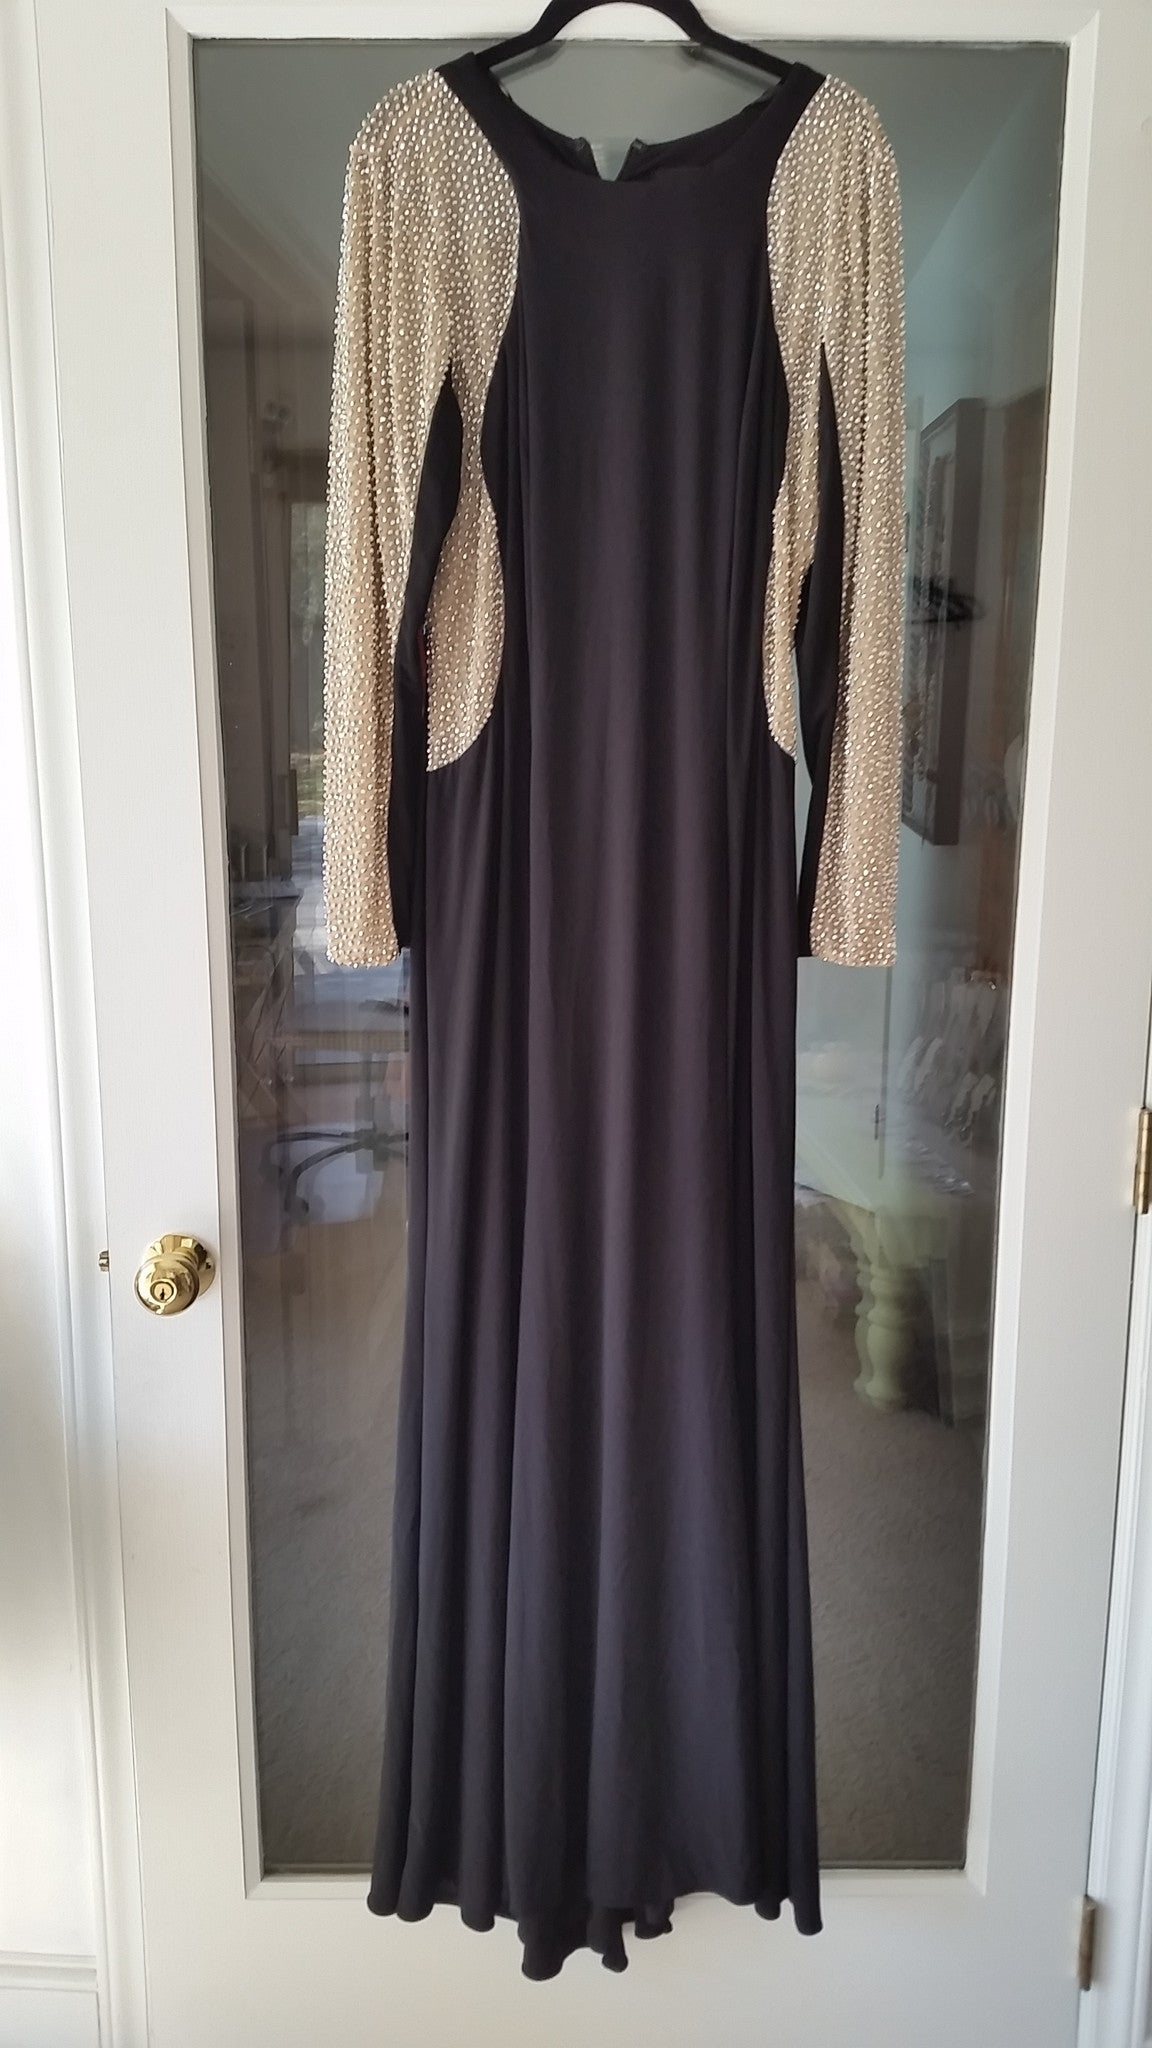 Black Maxi Long Sleeve Scoop Dress by Xscape, Size 18W